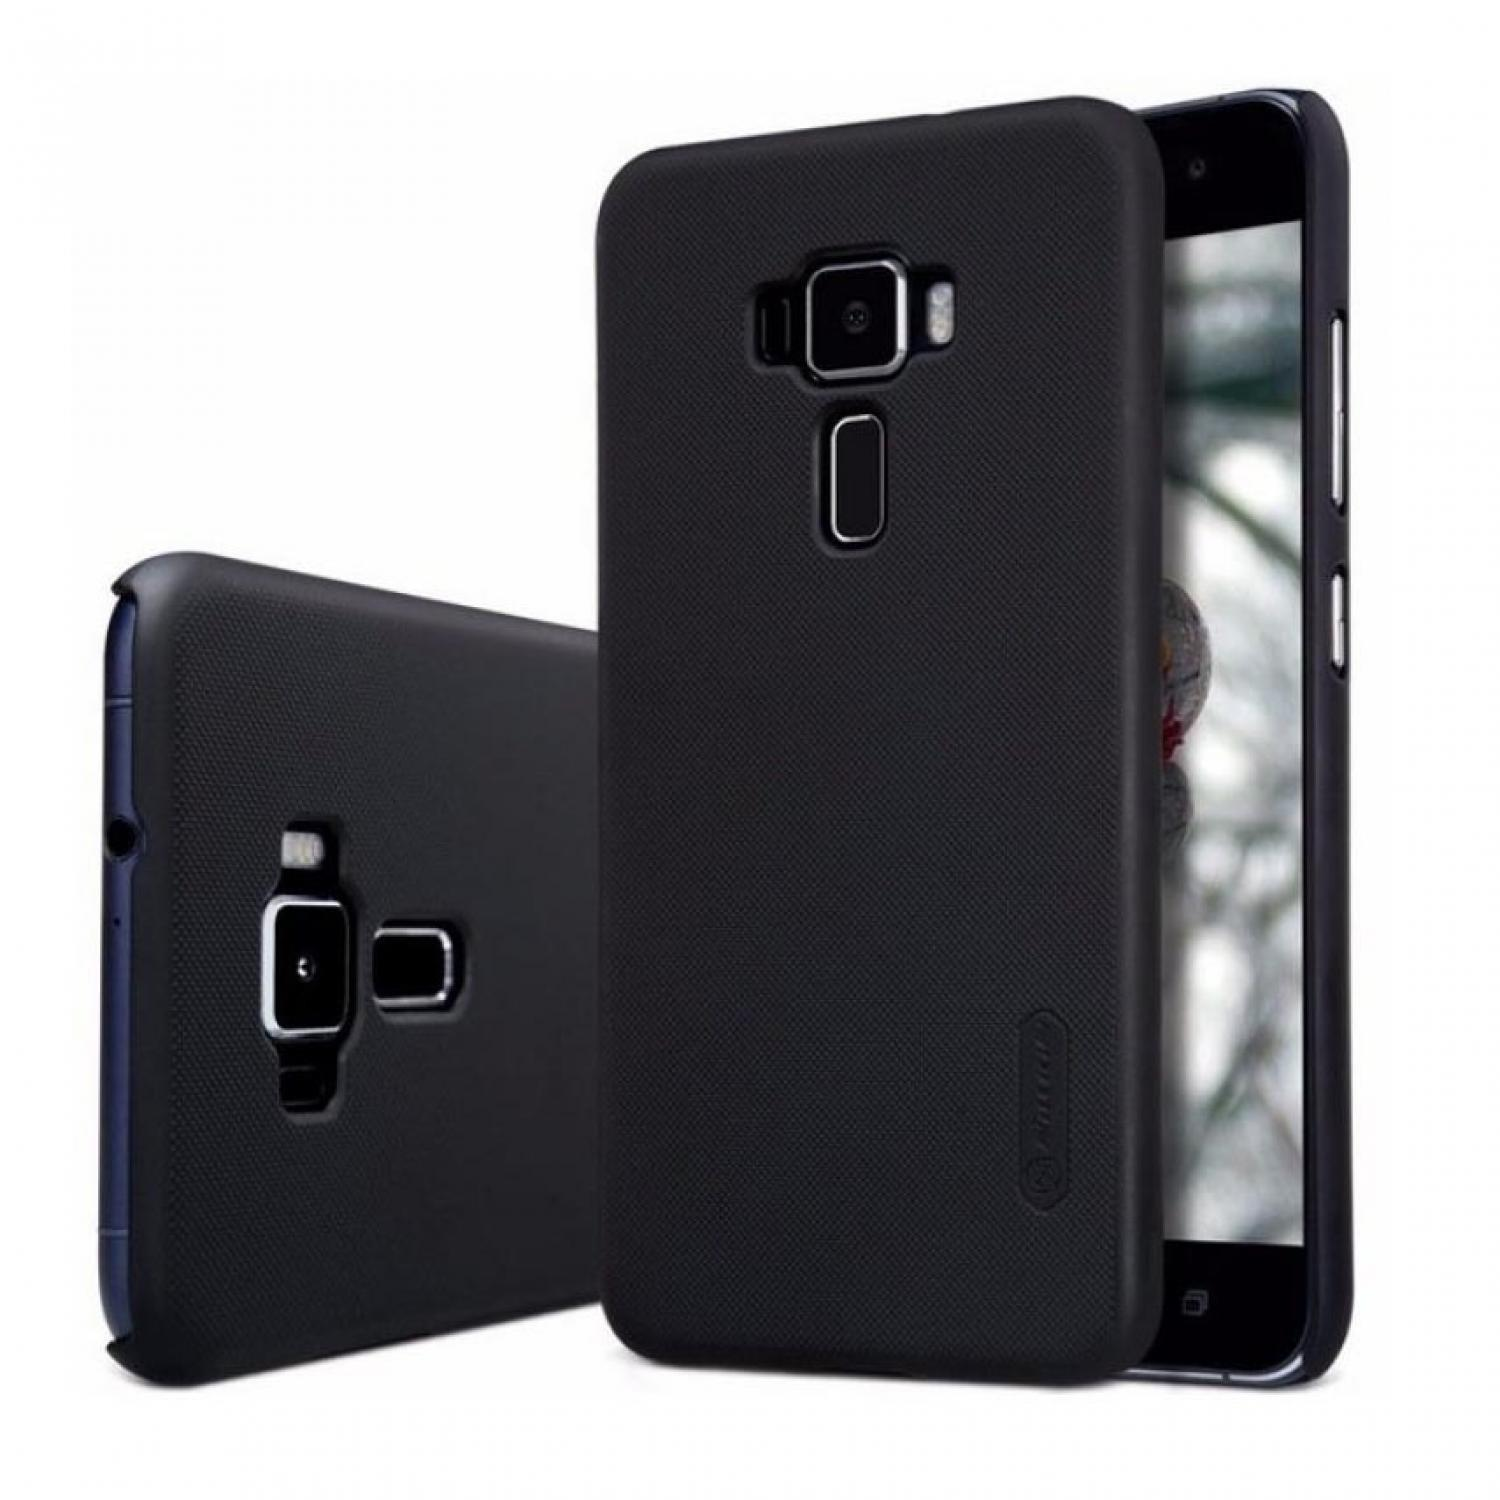 Nillkin Super Frosted Shield Hard Case for Asus Zenfone Casing HP Murah Terbaru